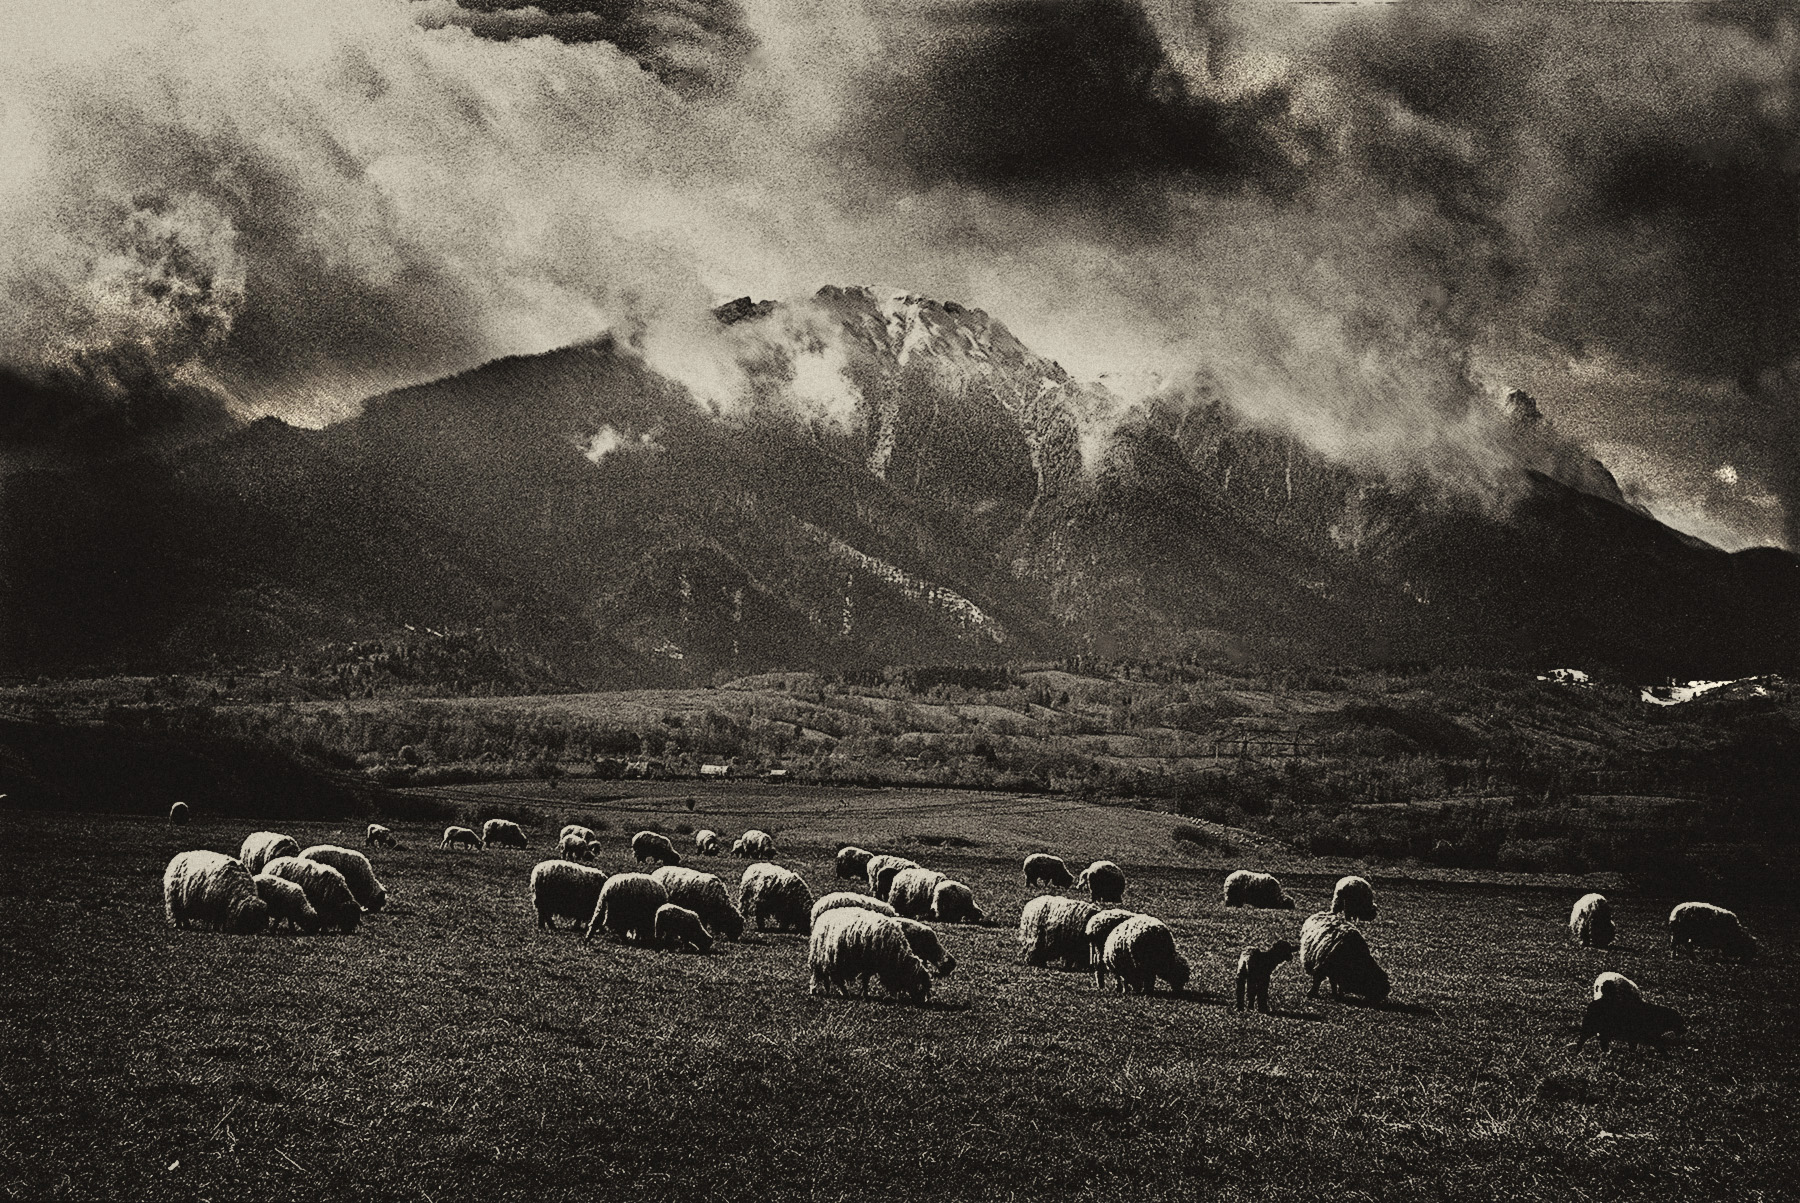 romania_Sheeps_LR_